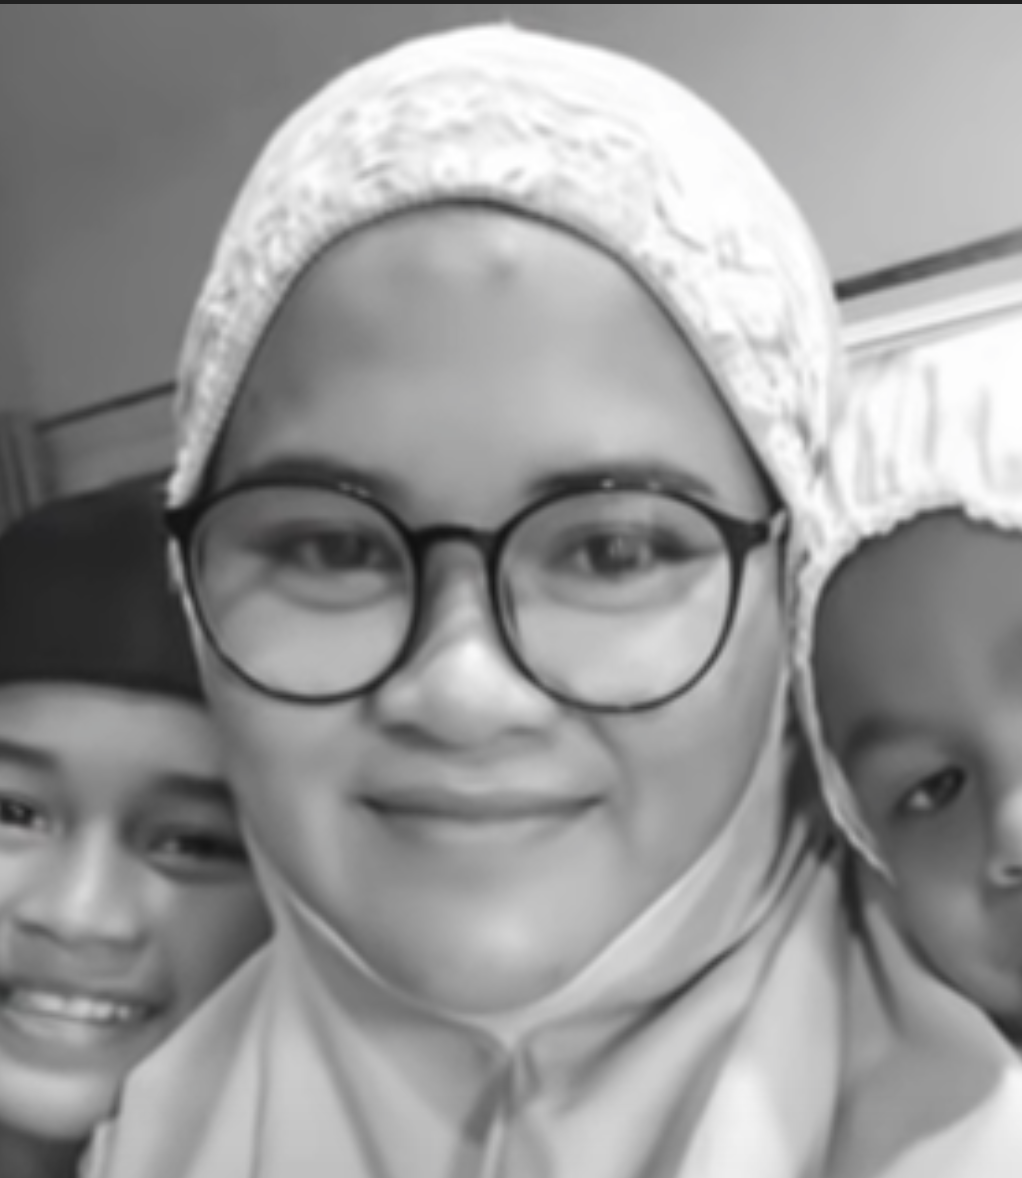 Noriezszah Ishak smiles in a telekung, with two of her young chidren. She has a round face and wears dark rimmed glasses.